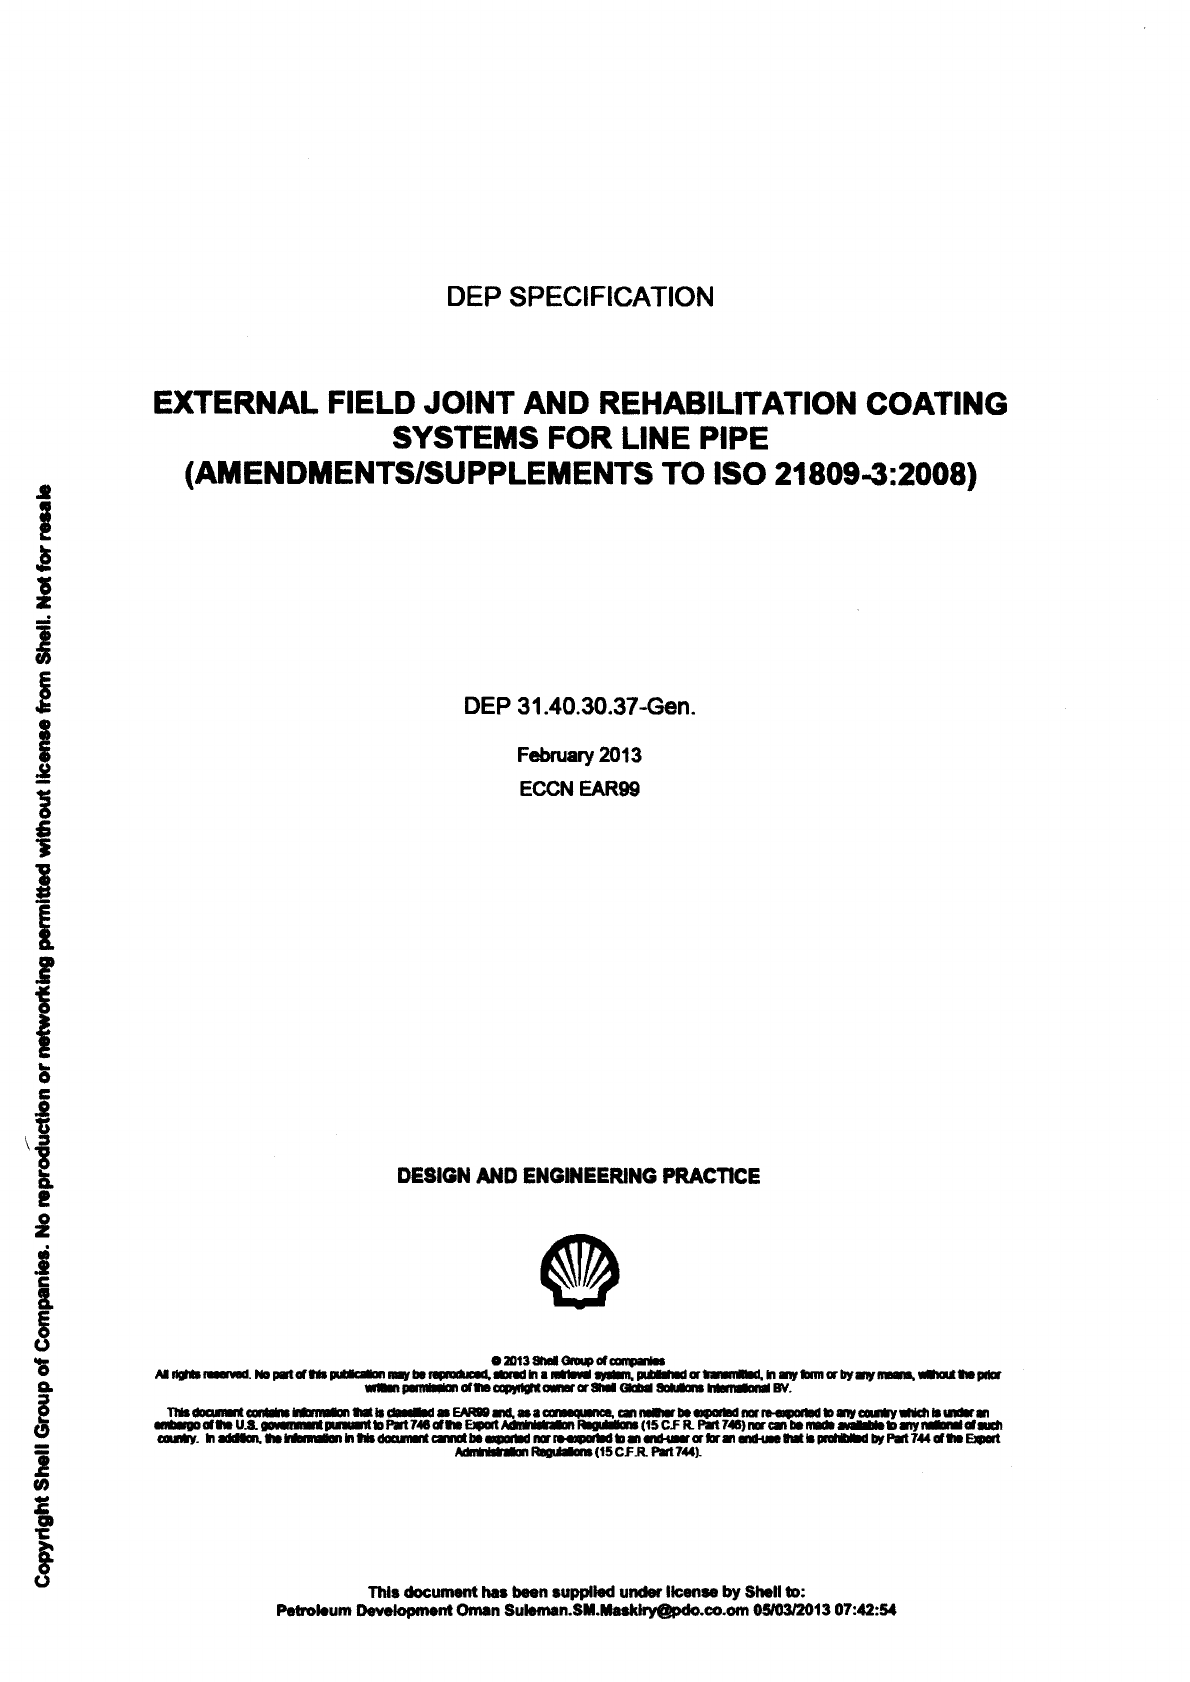 Dep 31 40 30 37 External Field Joint And Rehabilitation Coating Systems For Line Pipe